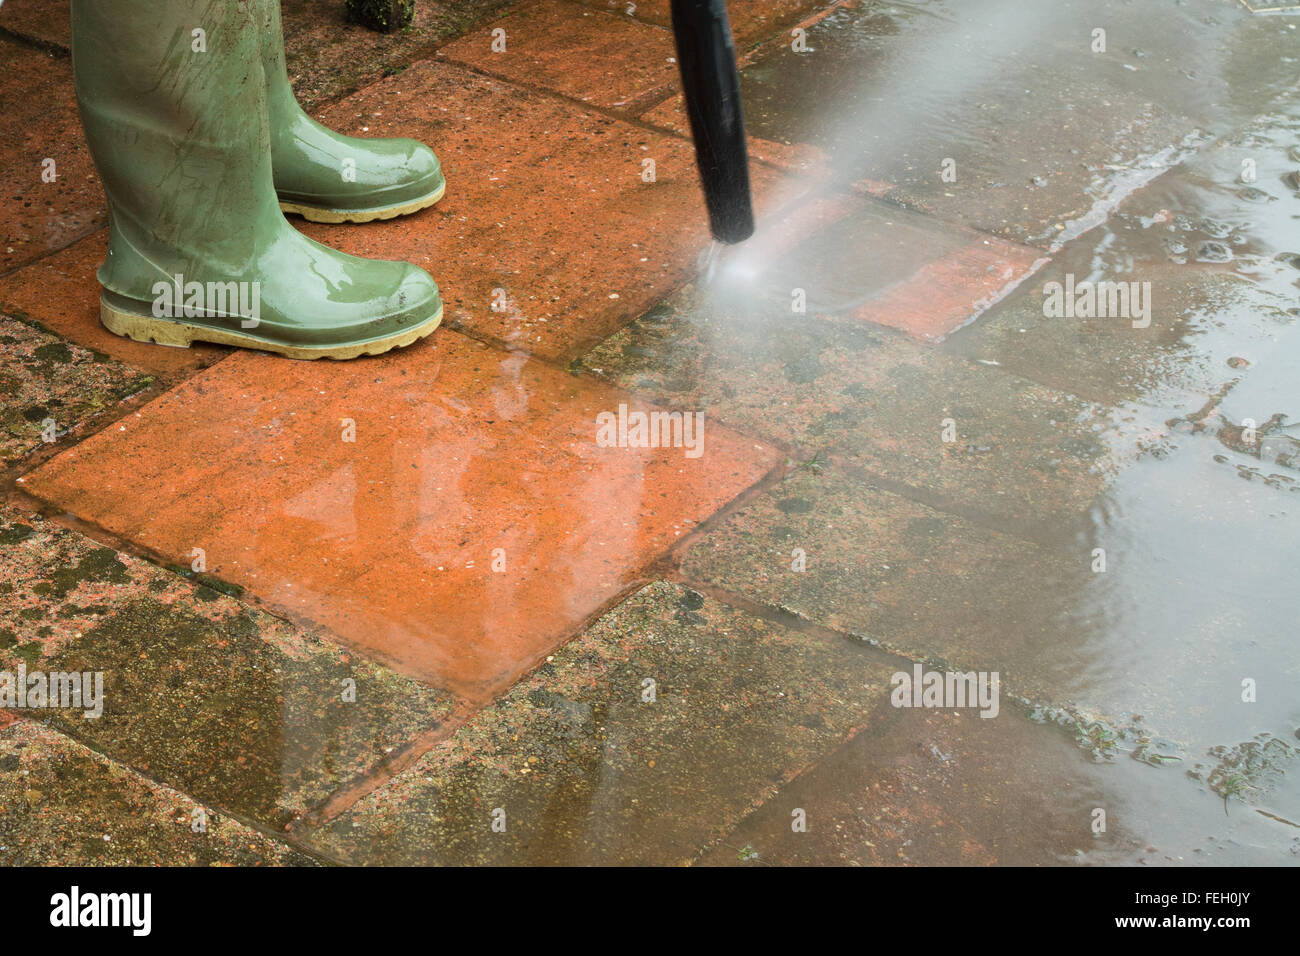 Power washing dirty patio - Stock Image